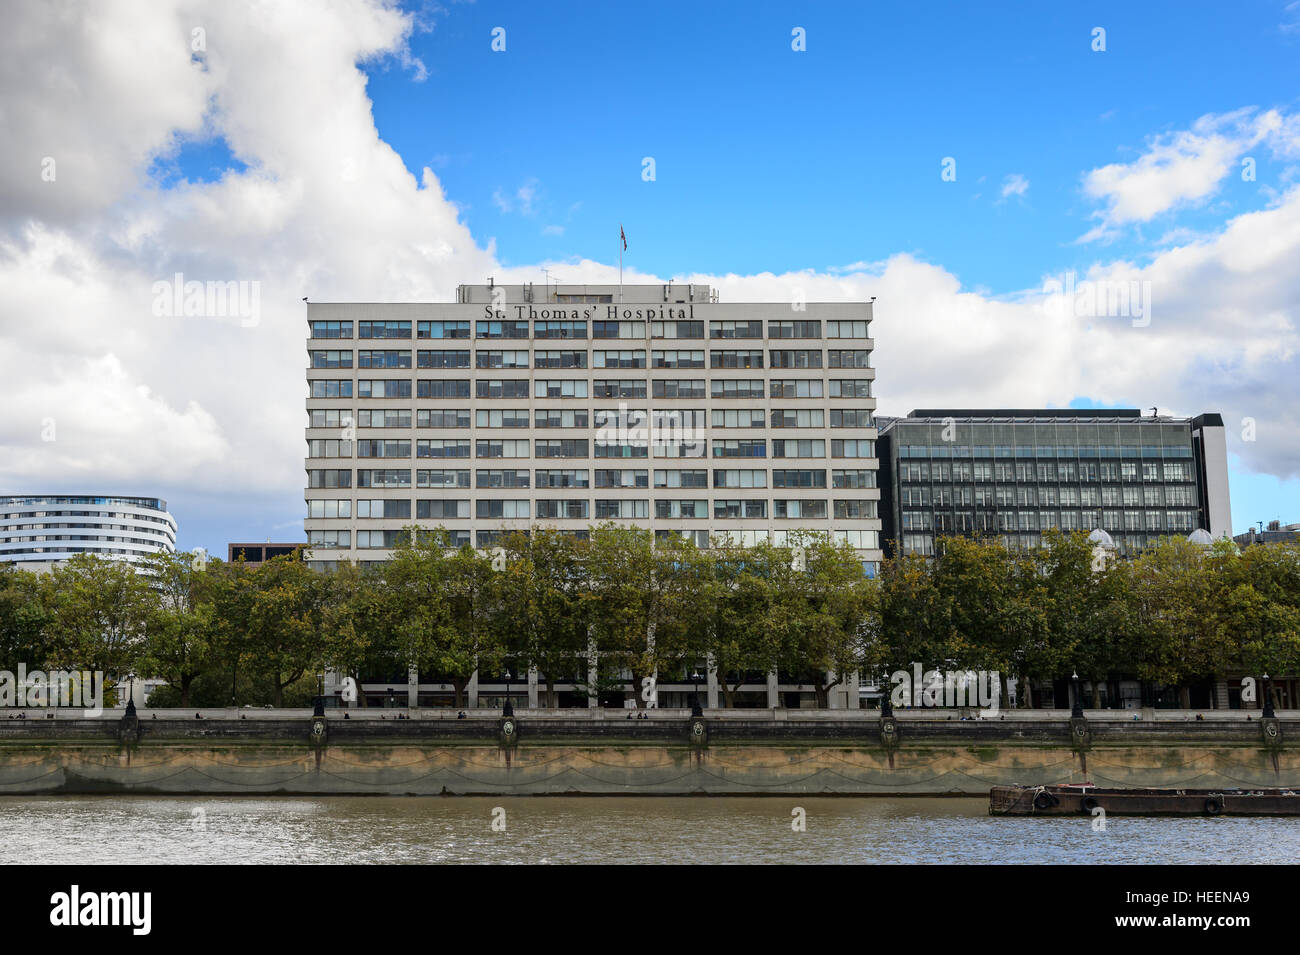 Looking south toward St Thomas' Hospital on the River Thames, London, UK - Stock Image